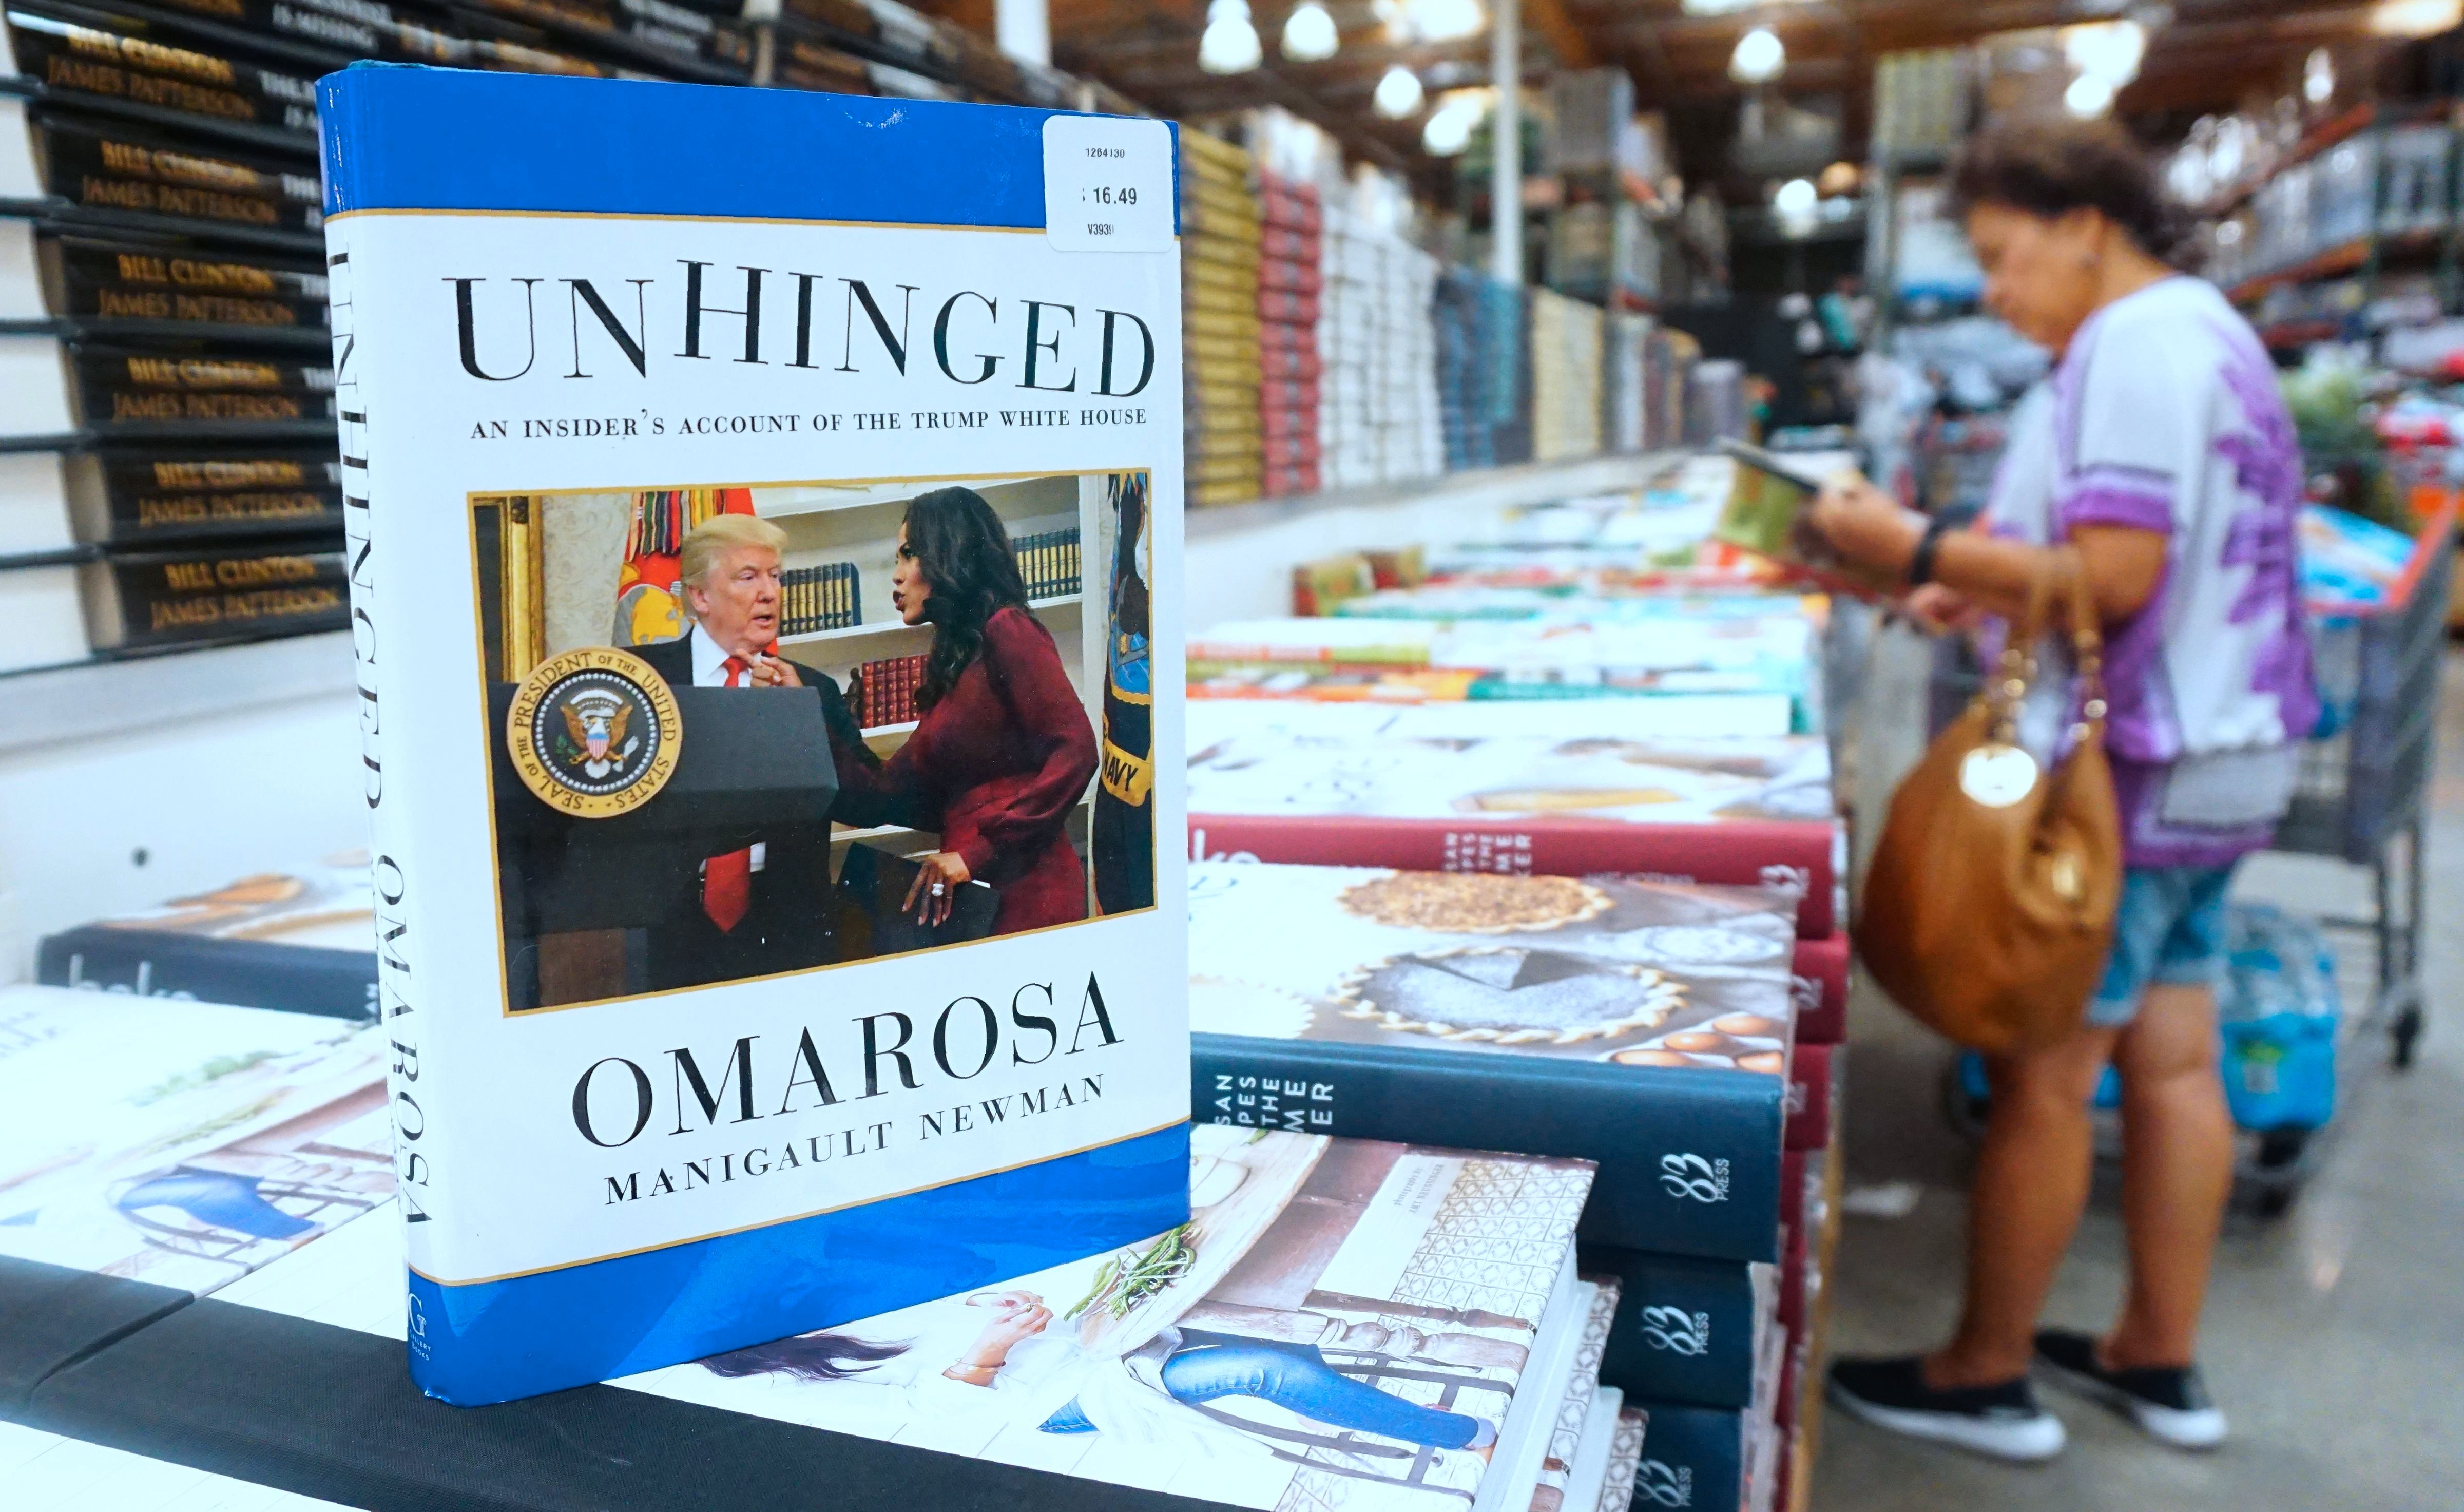 Lawyer For Omarosa's Publisher Taunts Trump: Being Embarrassed Is Not A Legal